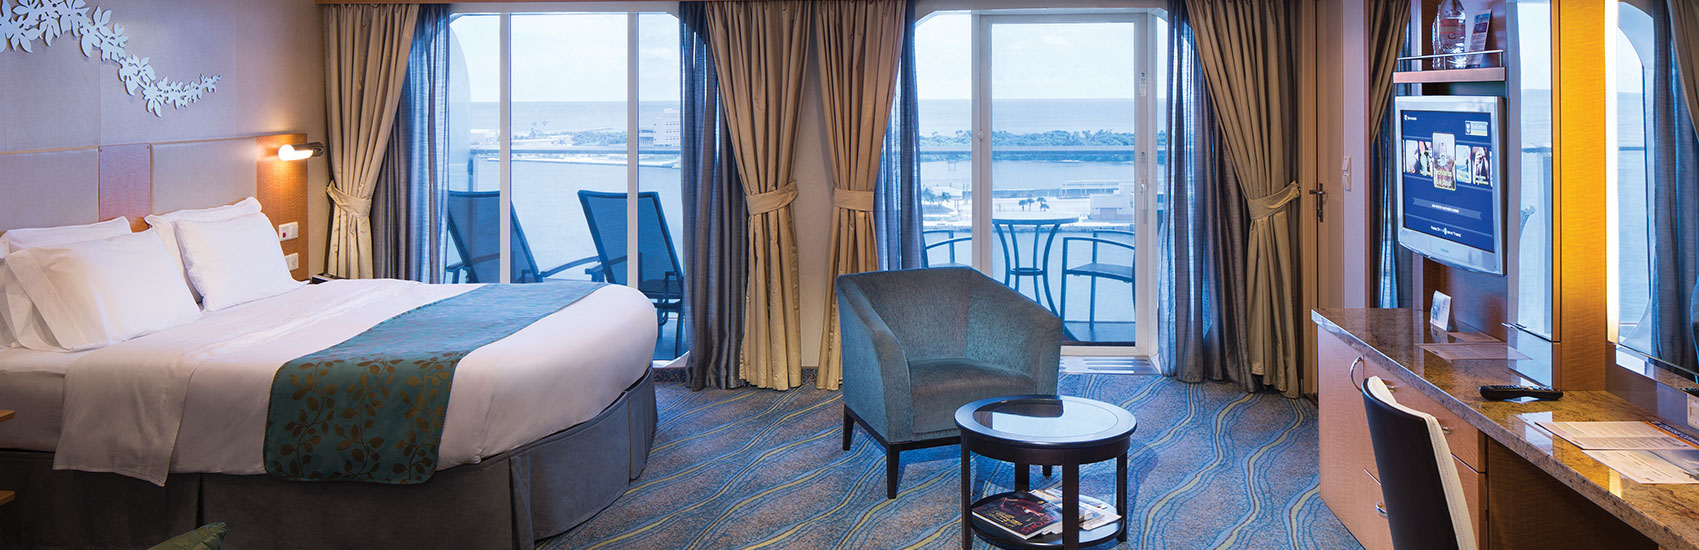 Tips For Picking The Best Stateroom For Your Cruise 2